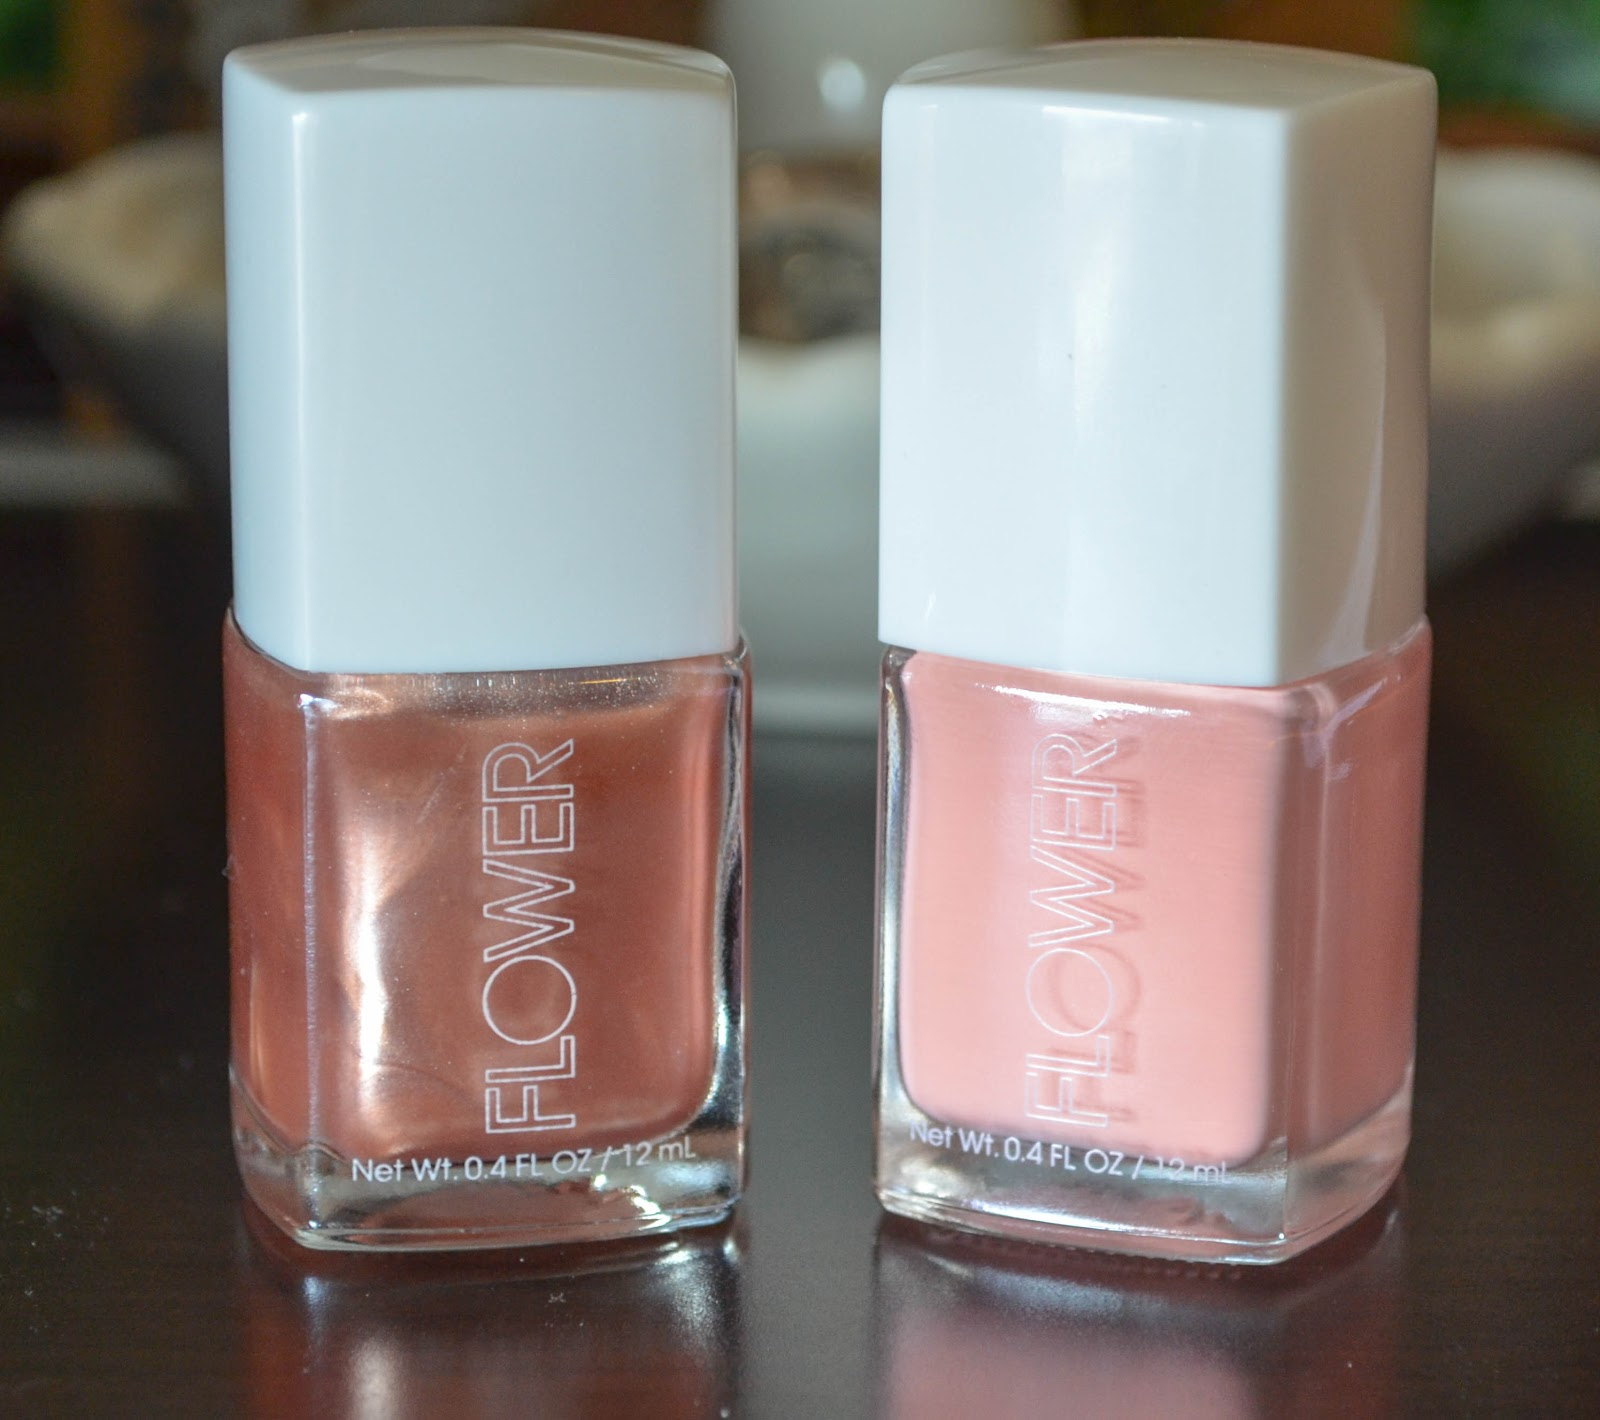 Dorm room curly review flower cosmetics nail polishes review flower cosmetics nail polishes izmirmasajfo